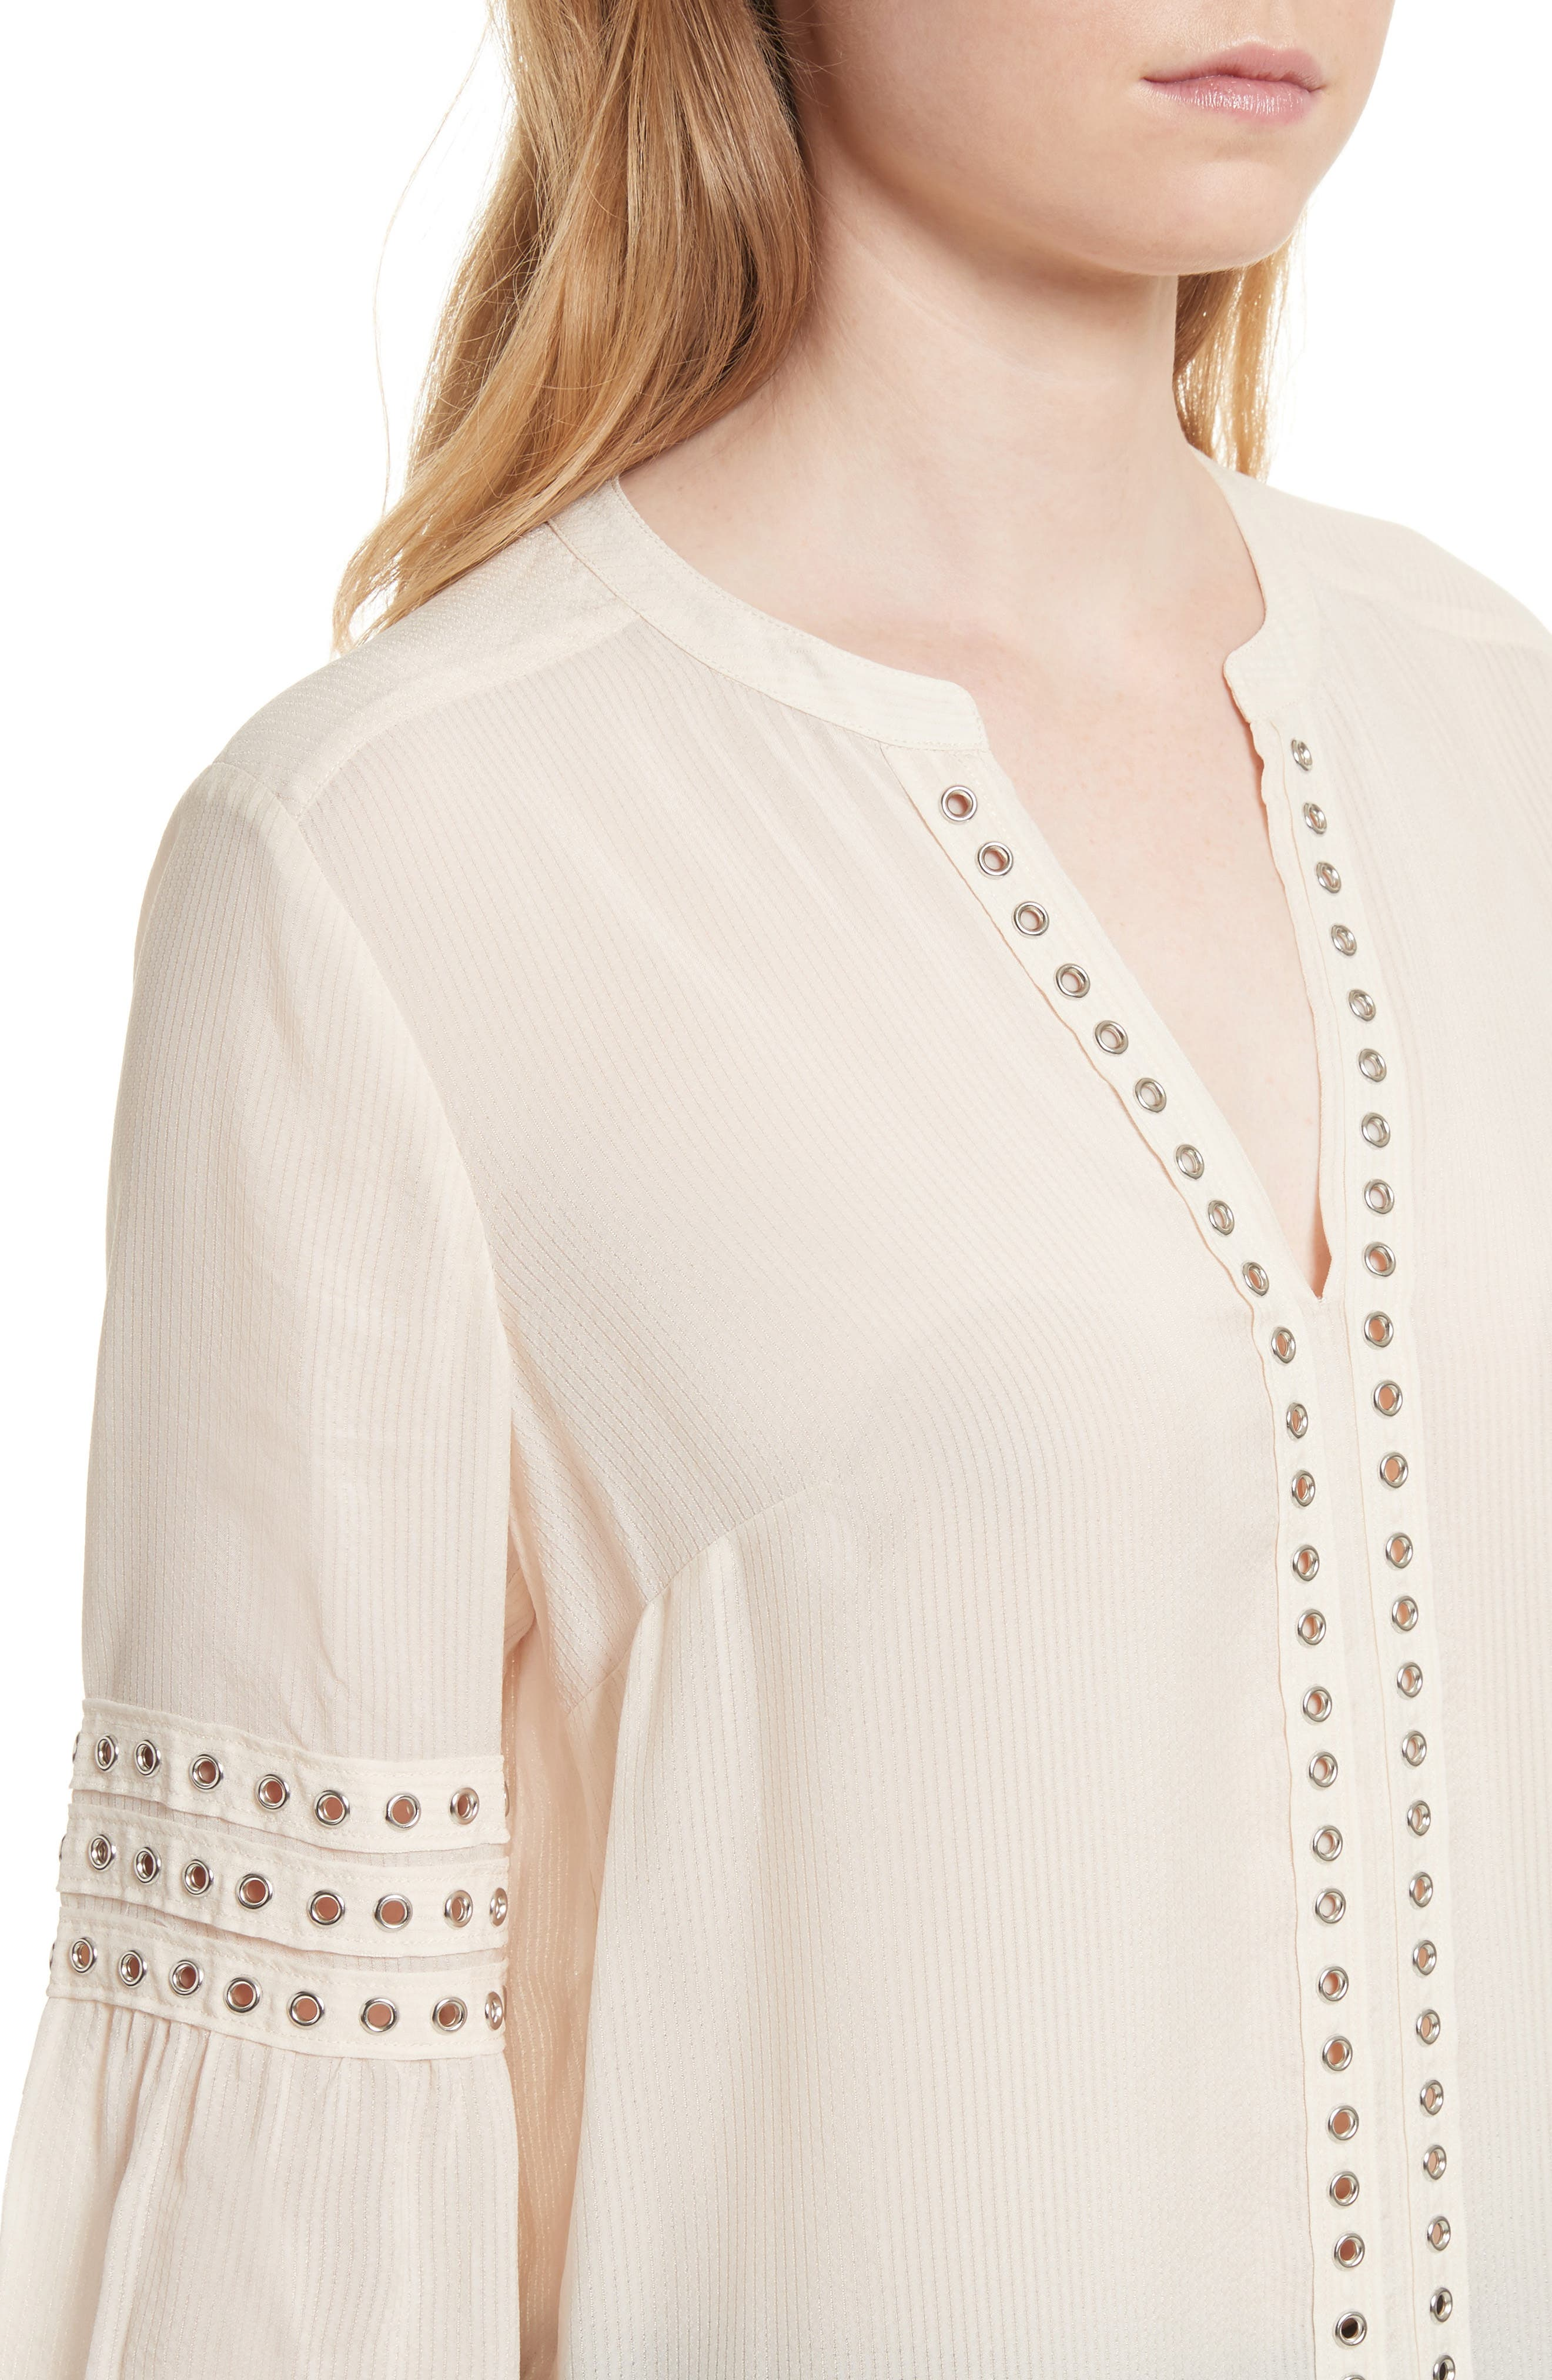 Willa Eyelet Trim Blouse,                             Alternate thumbnail 4, color,                             White